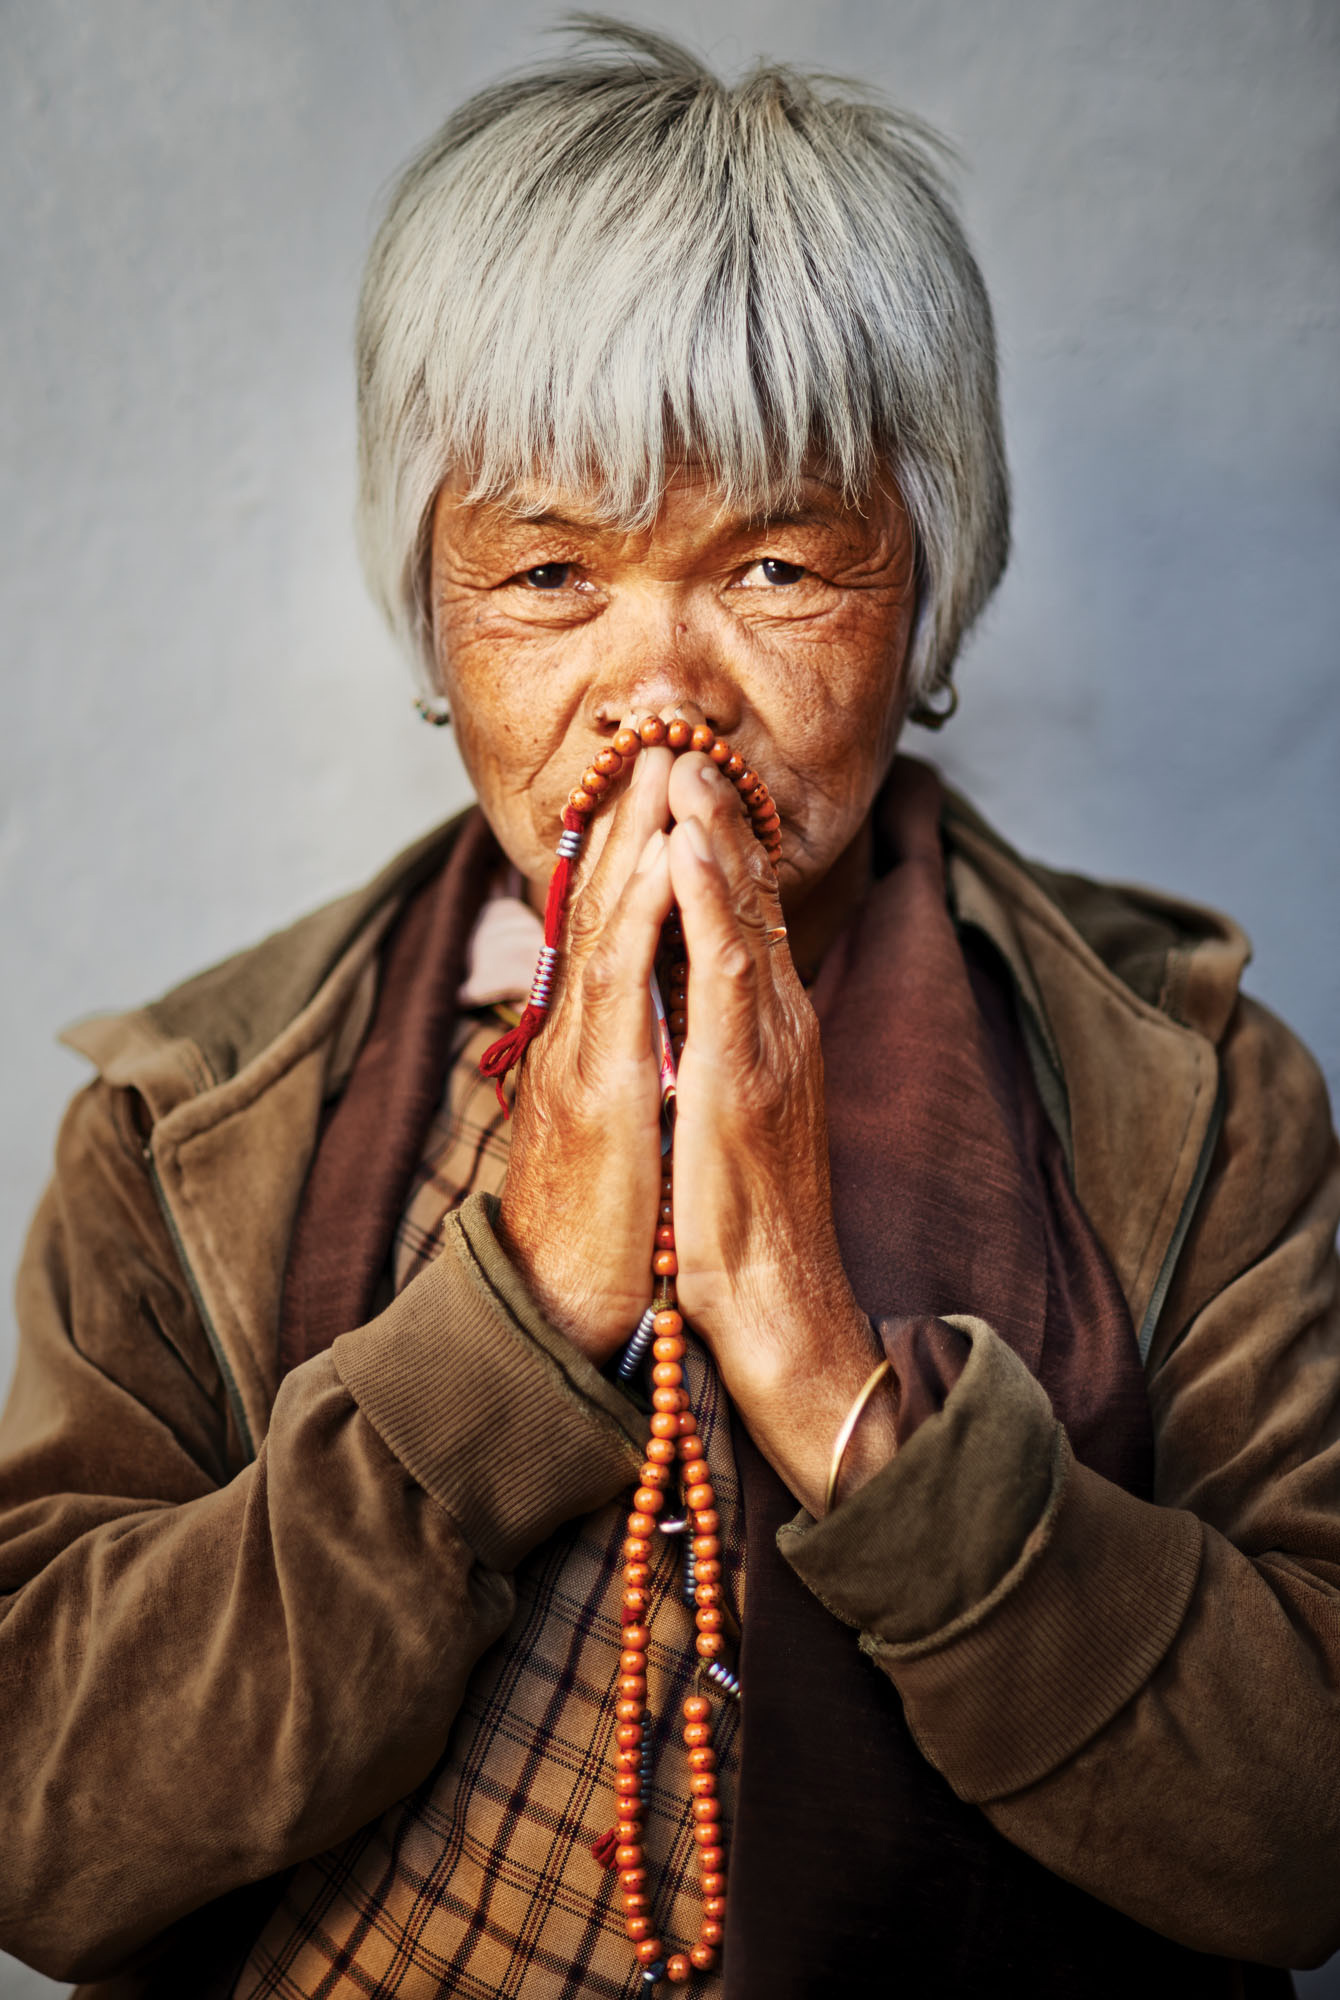 Lady praying, Bhutan. Should I have paid to take this photo? My conscience is clear! Nikon D800, 85mm lens, f2 @ 1/400 second, ISO 200.